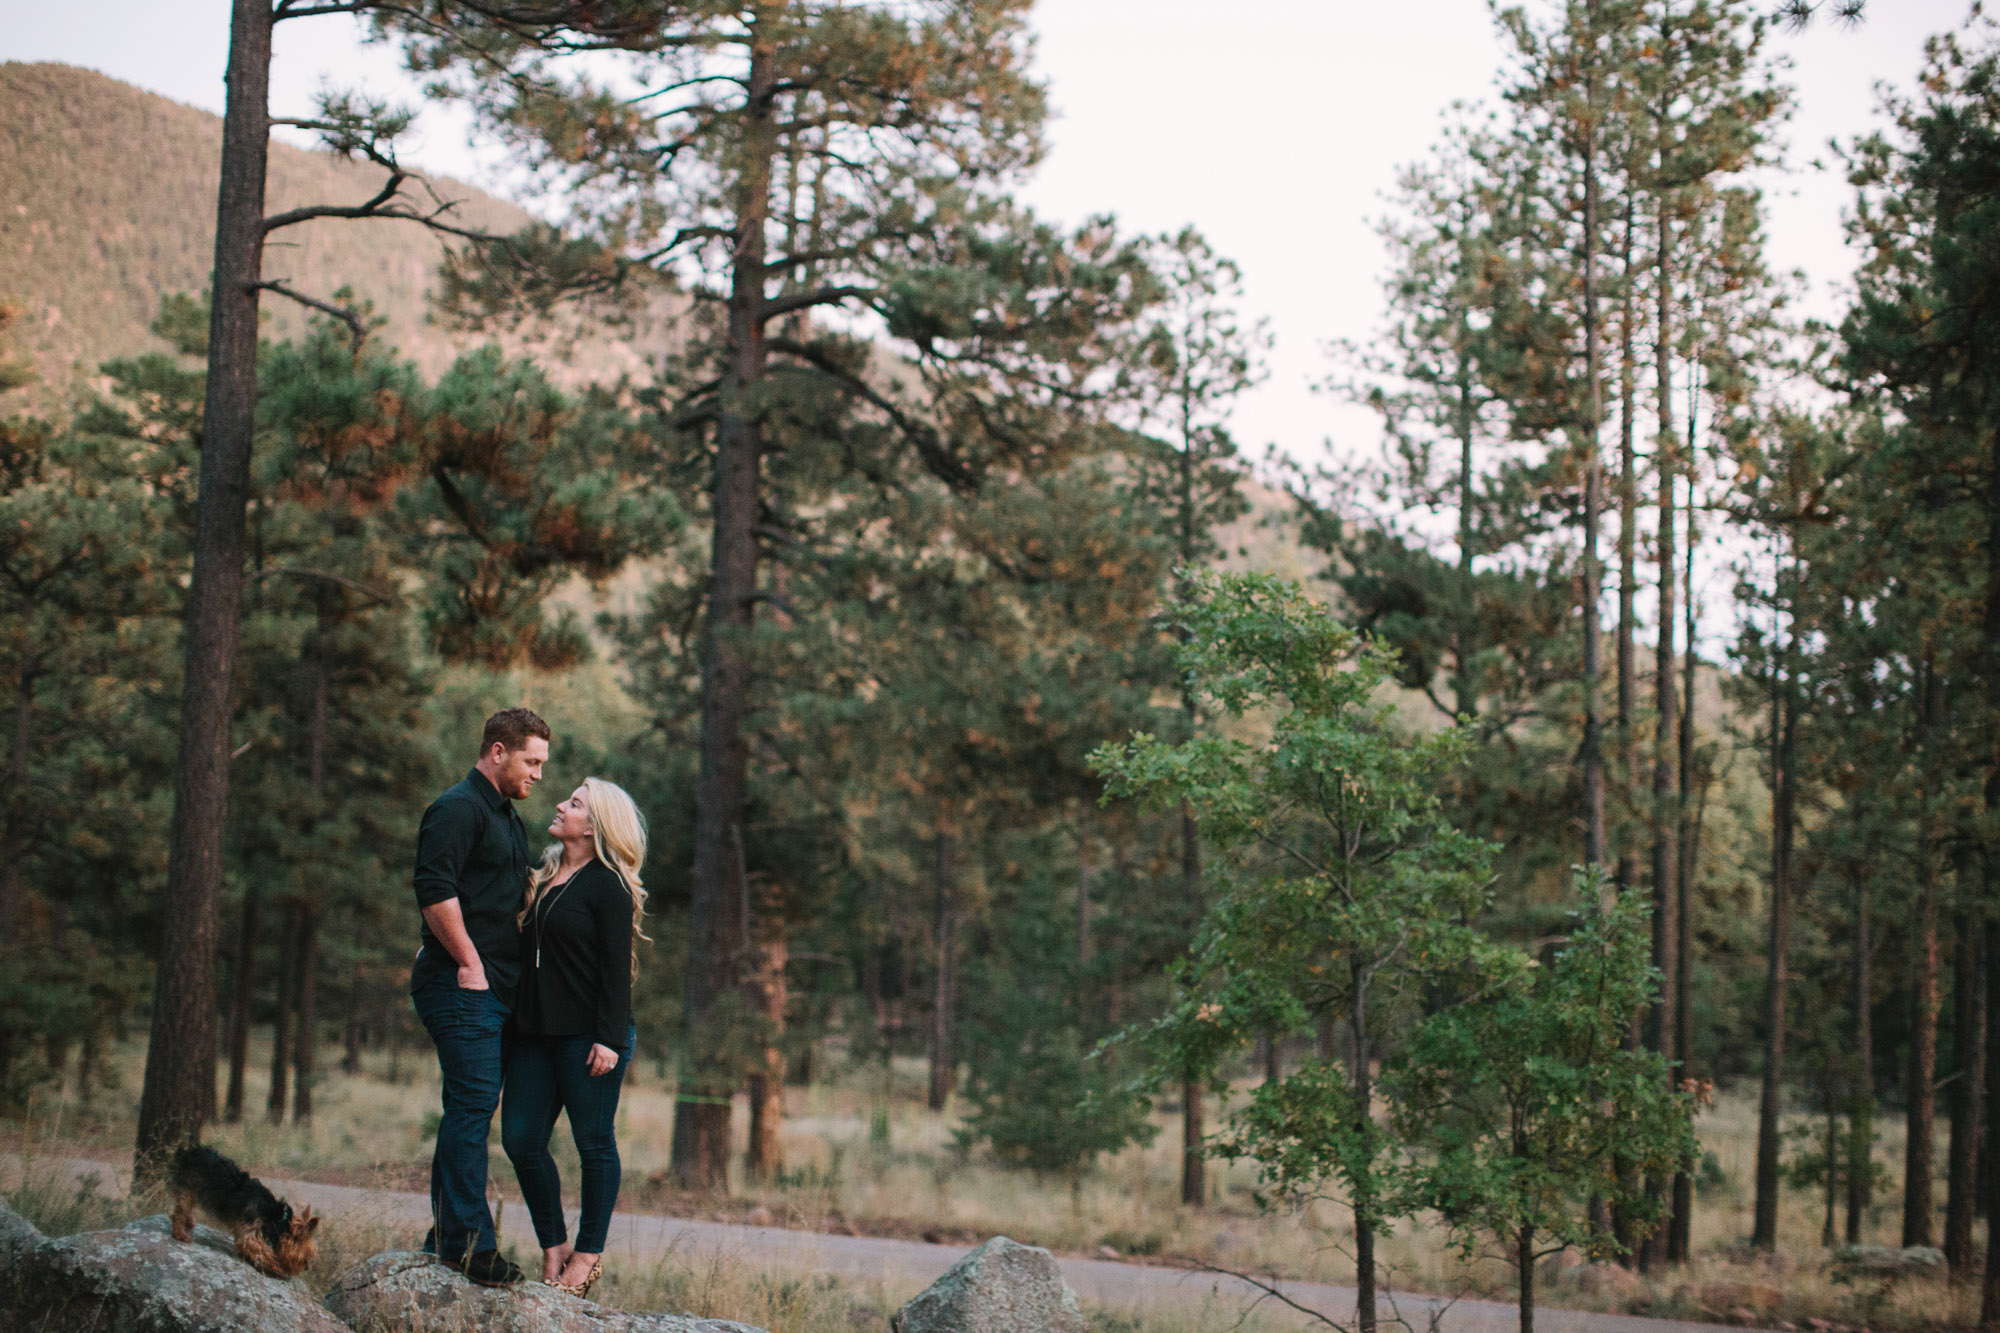 Calhoun Forest Outdoor Arizona Couples ©Ten22 Studio